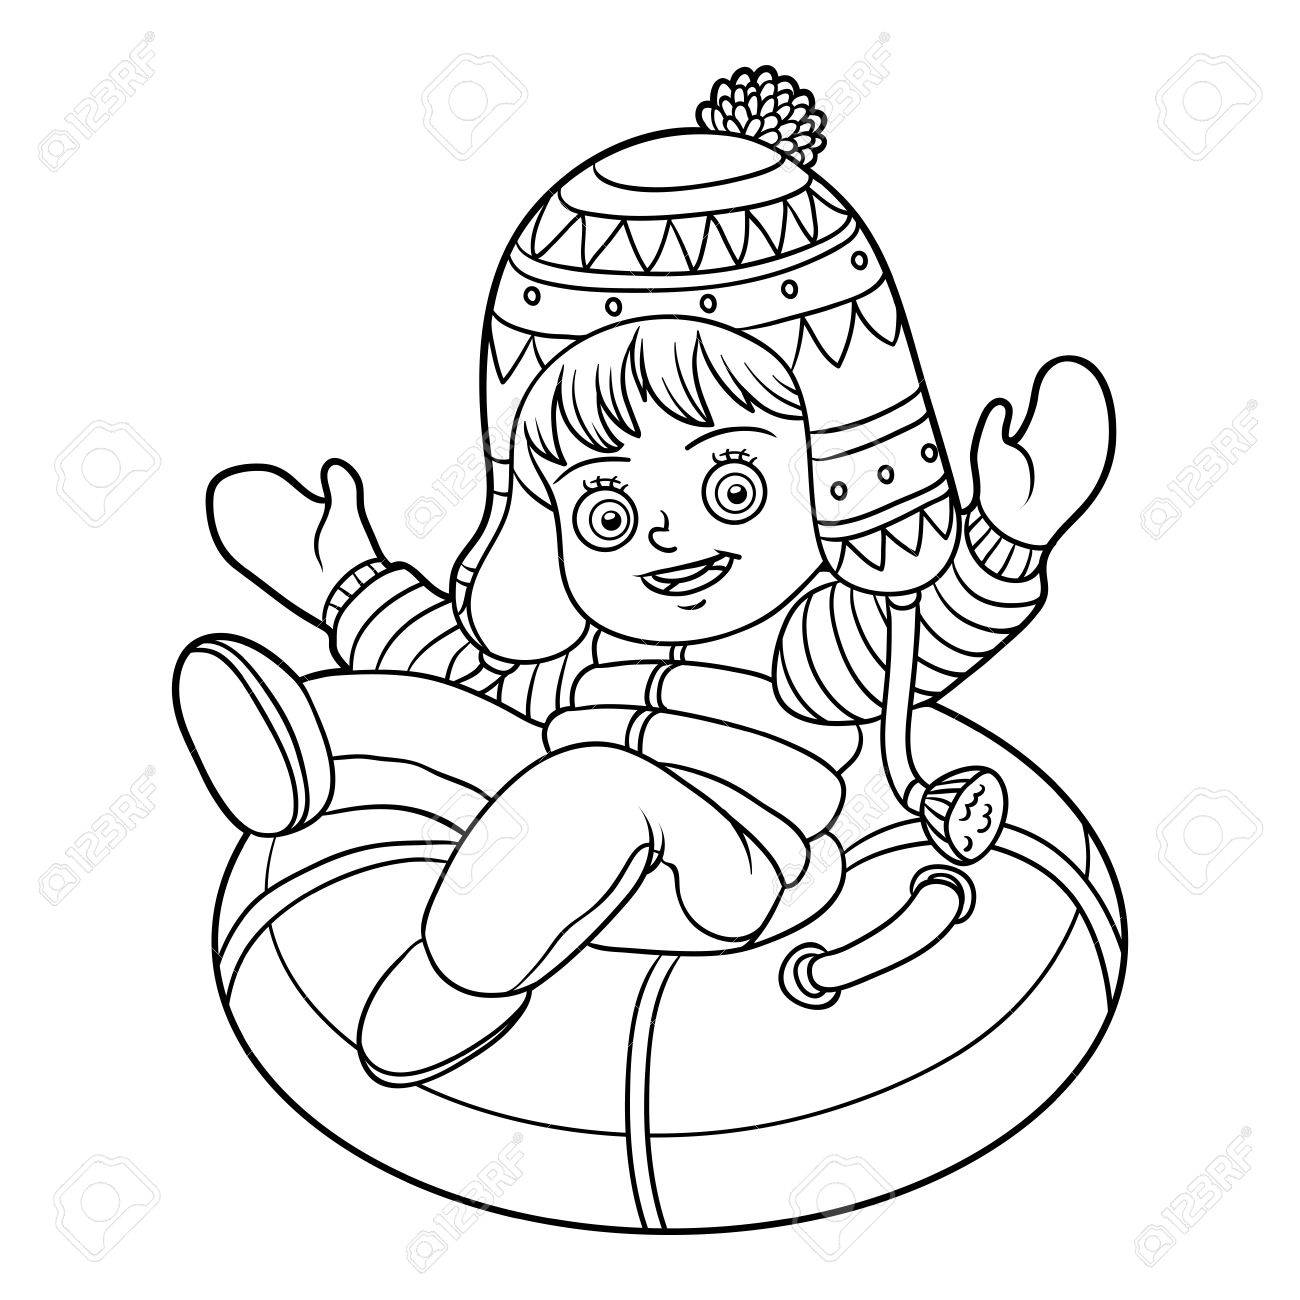 Coloring book for girl - Coloring Book For Children Happy Girl Riding On The Tubing Inflatable Sled Stock Vector